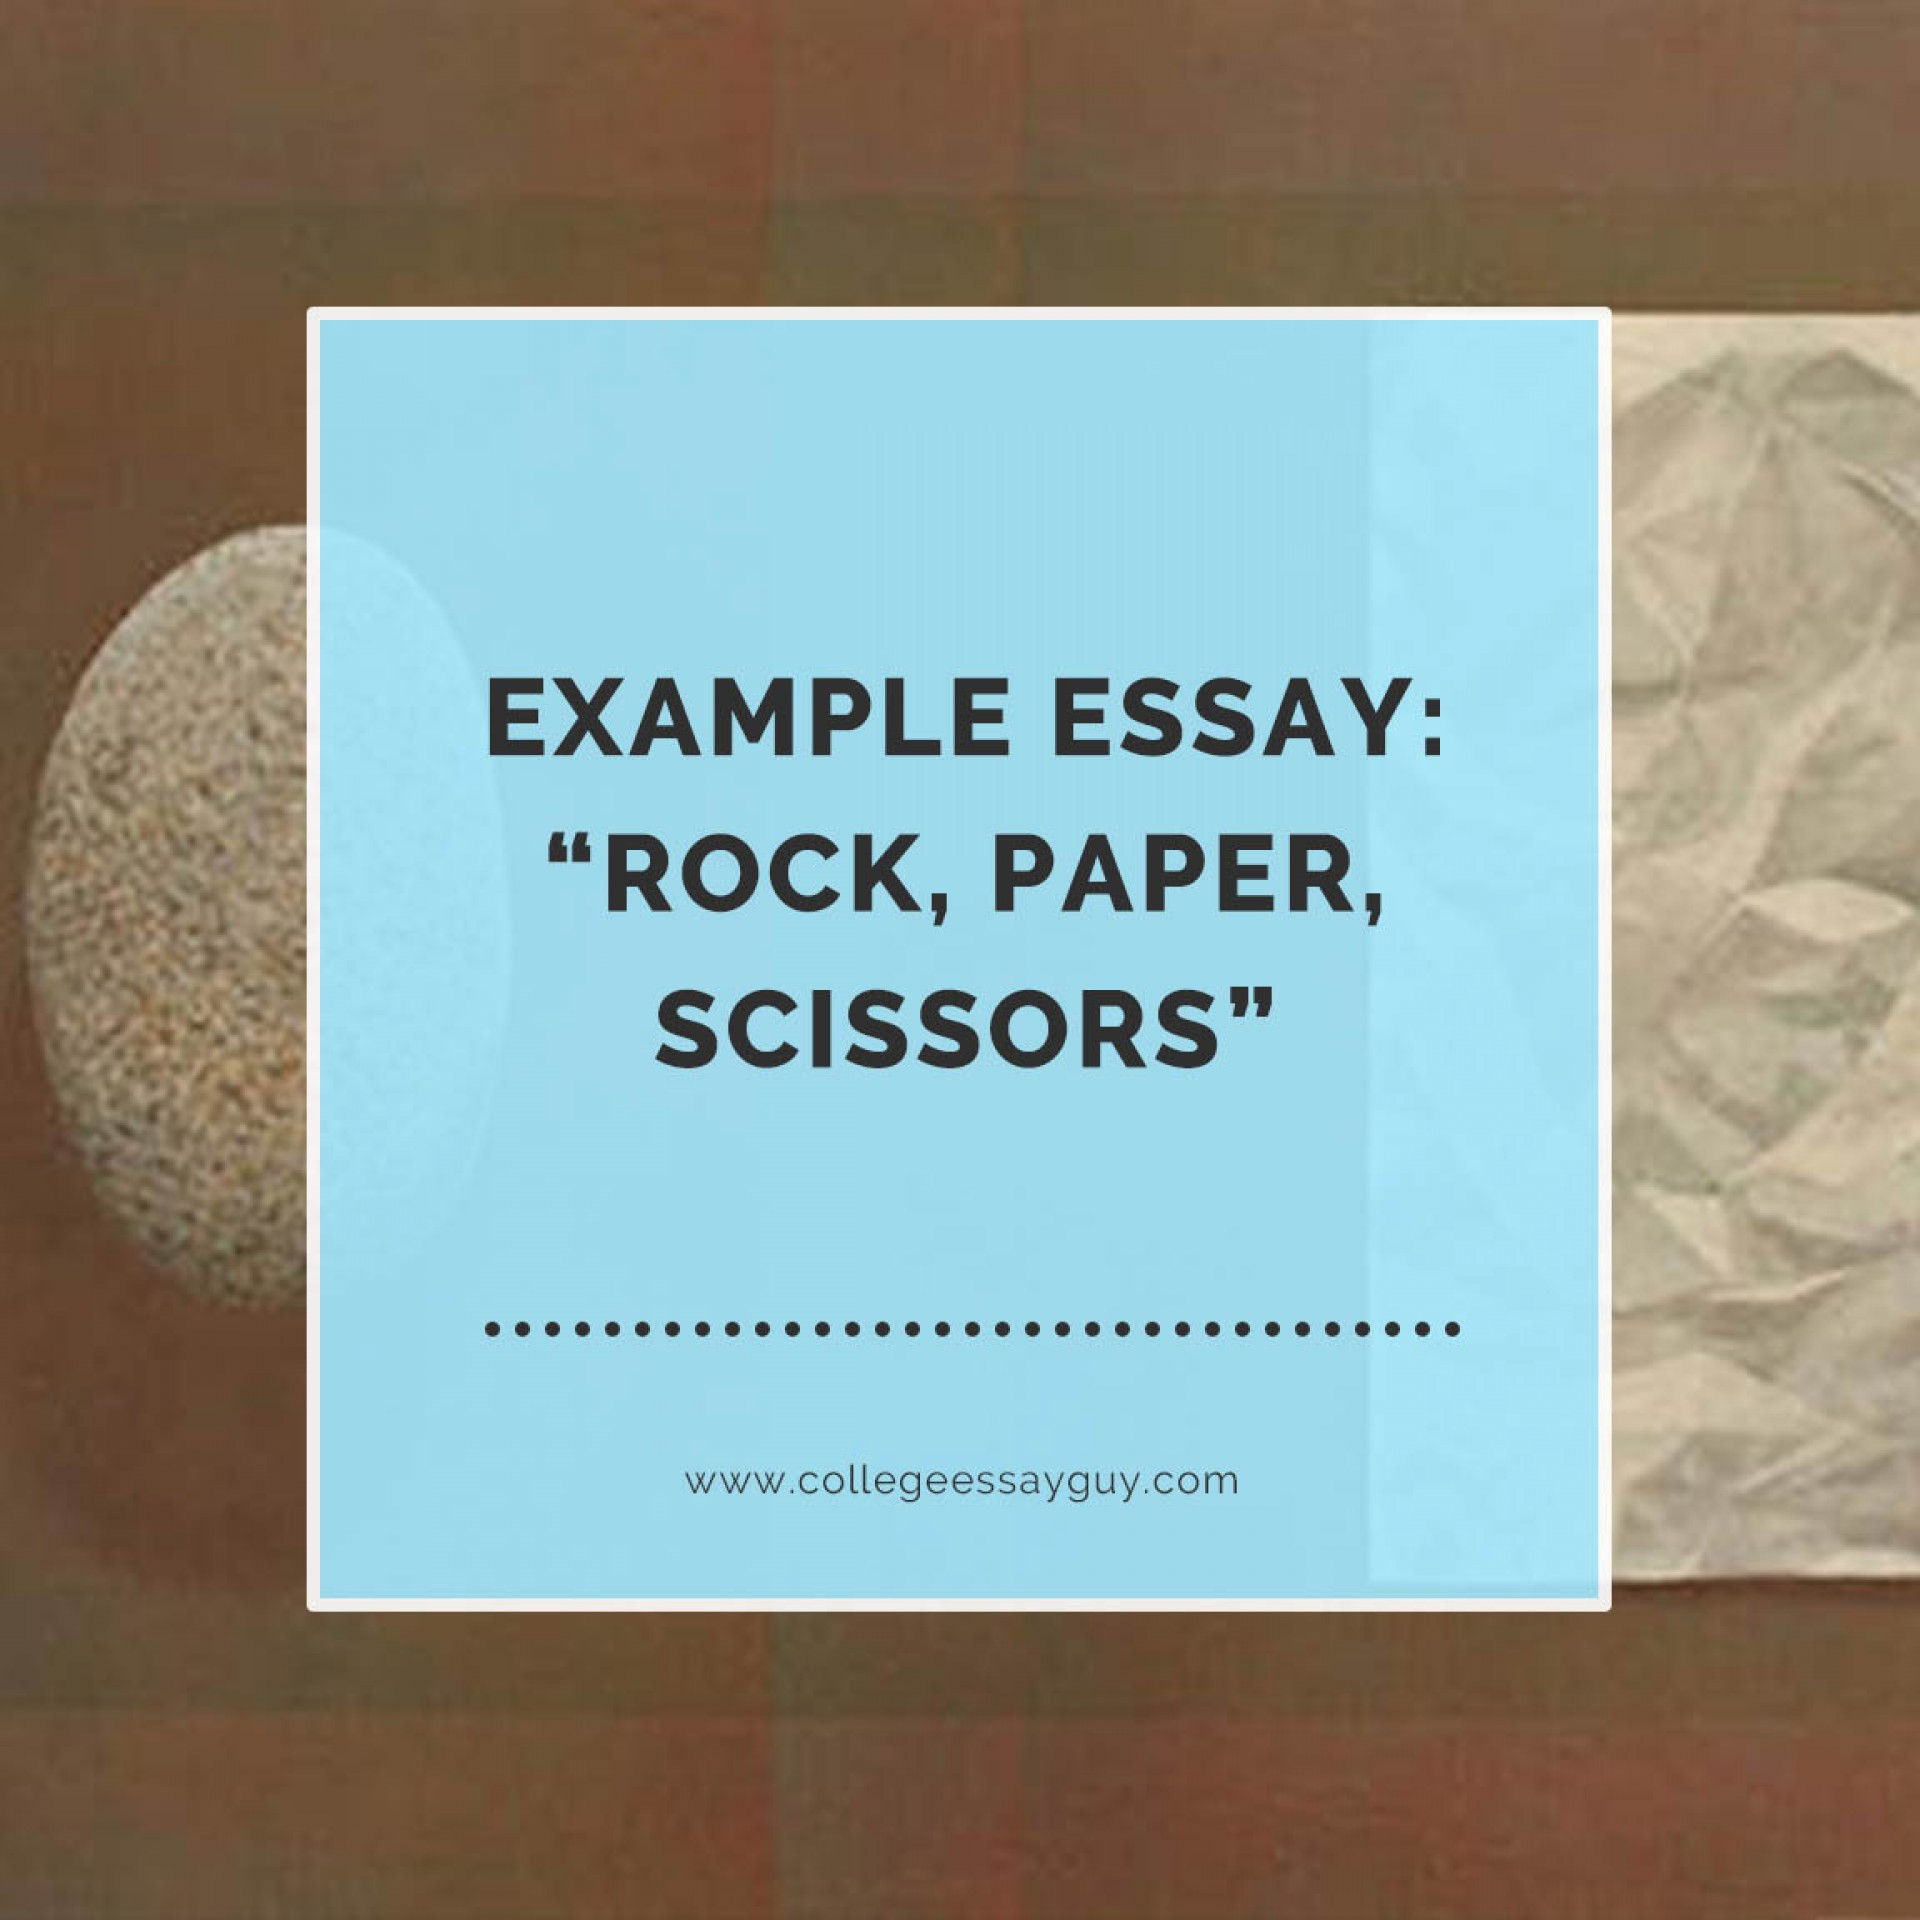 002 Uchicago Essay Questions Example Essays Student Profiles Good Scholarship Tumblr Inline Oeyjdcg3aw1rpf997 University Of Chicago Past Unique How To Answer 2017 1920